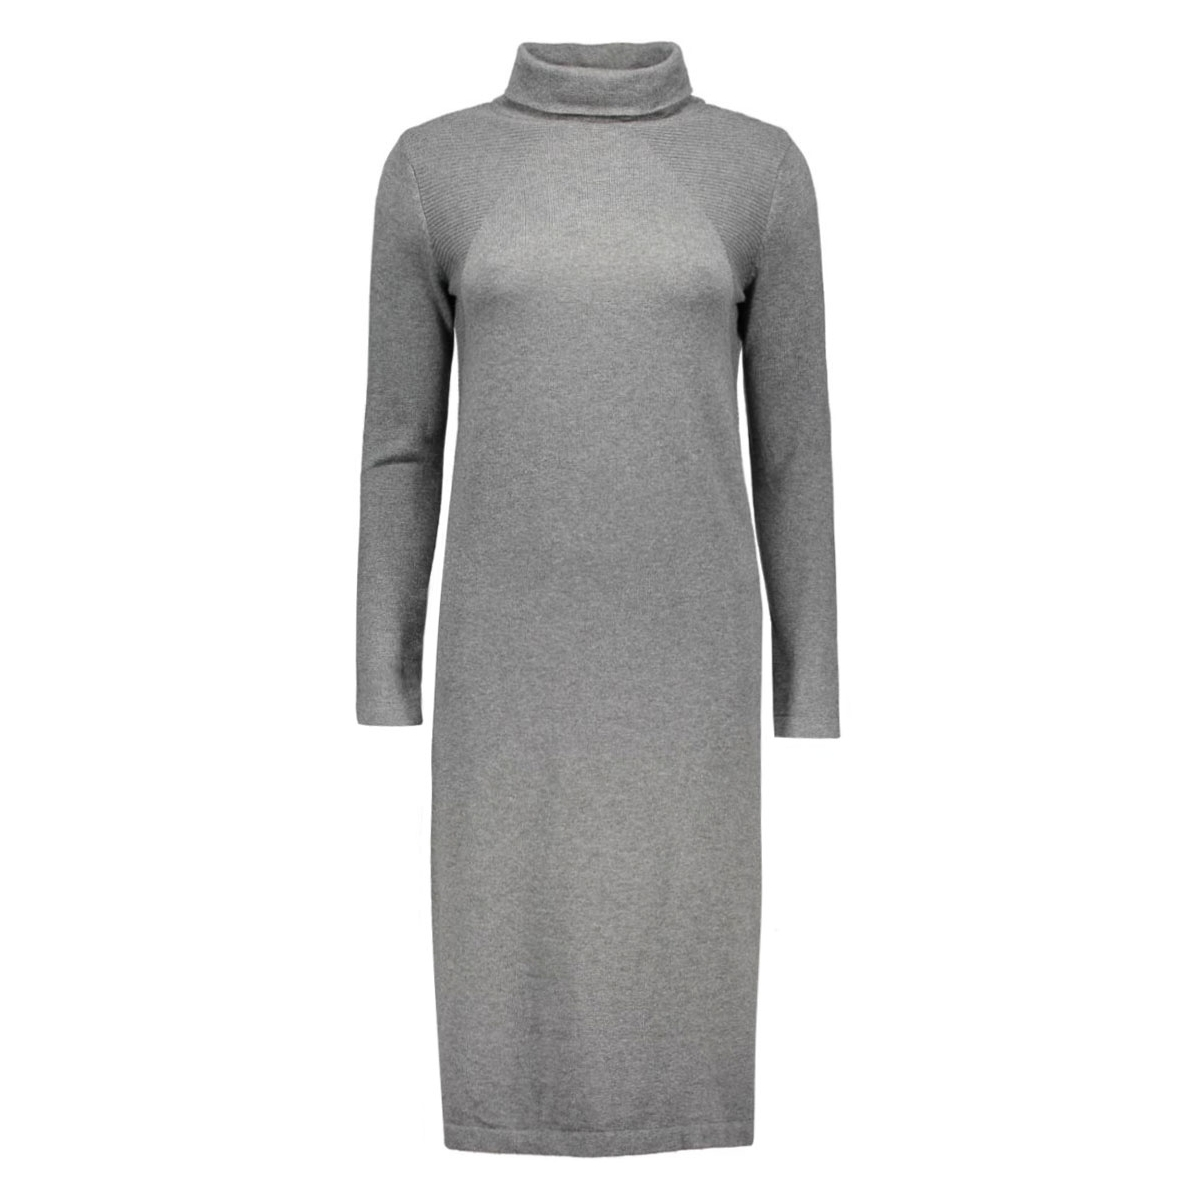 objvita morgan rollneck knit dress 23022730 object jurk medium grey melange